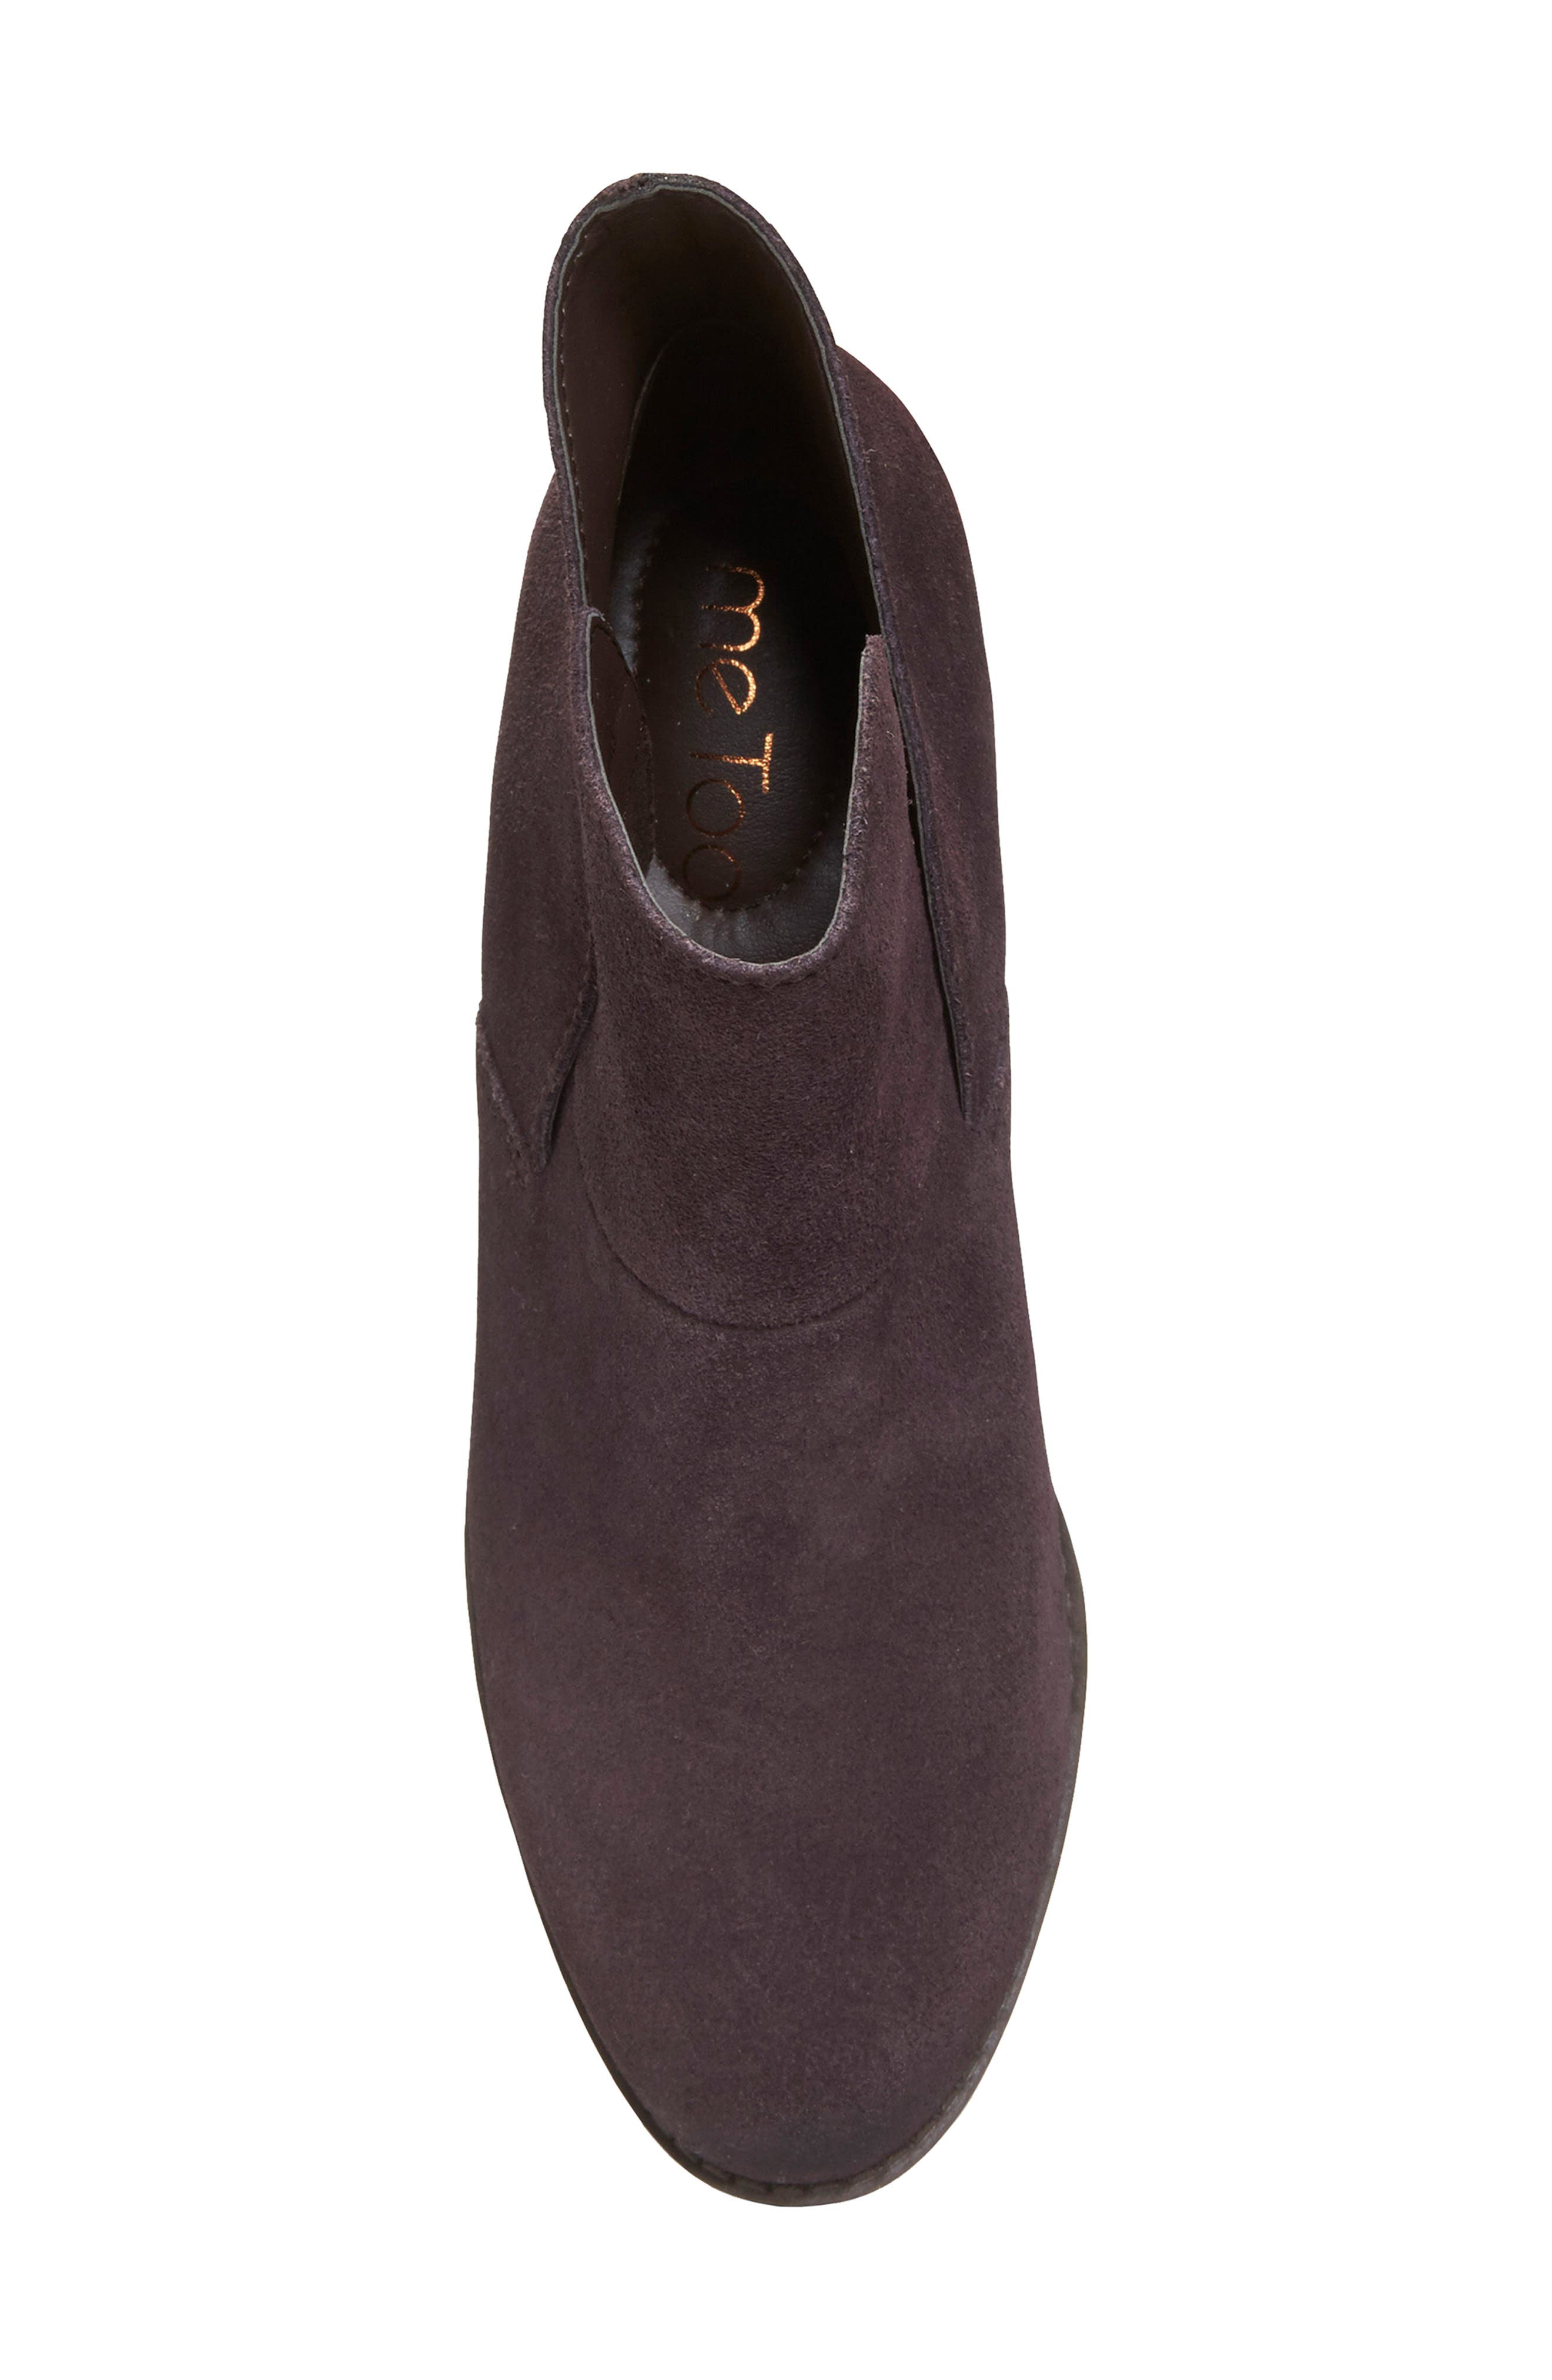 Zena Ankle Boot,                             Alternate thumbnail 5, color,                             Dark Ruby Suede